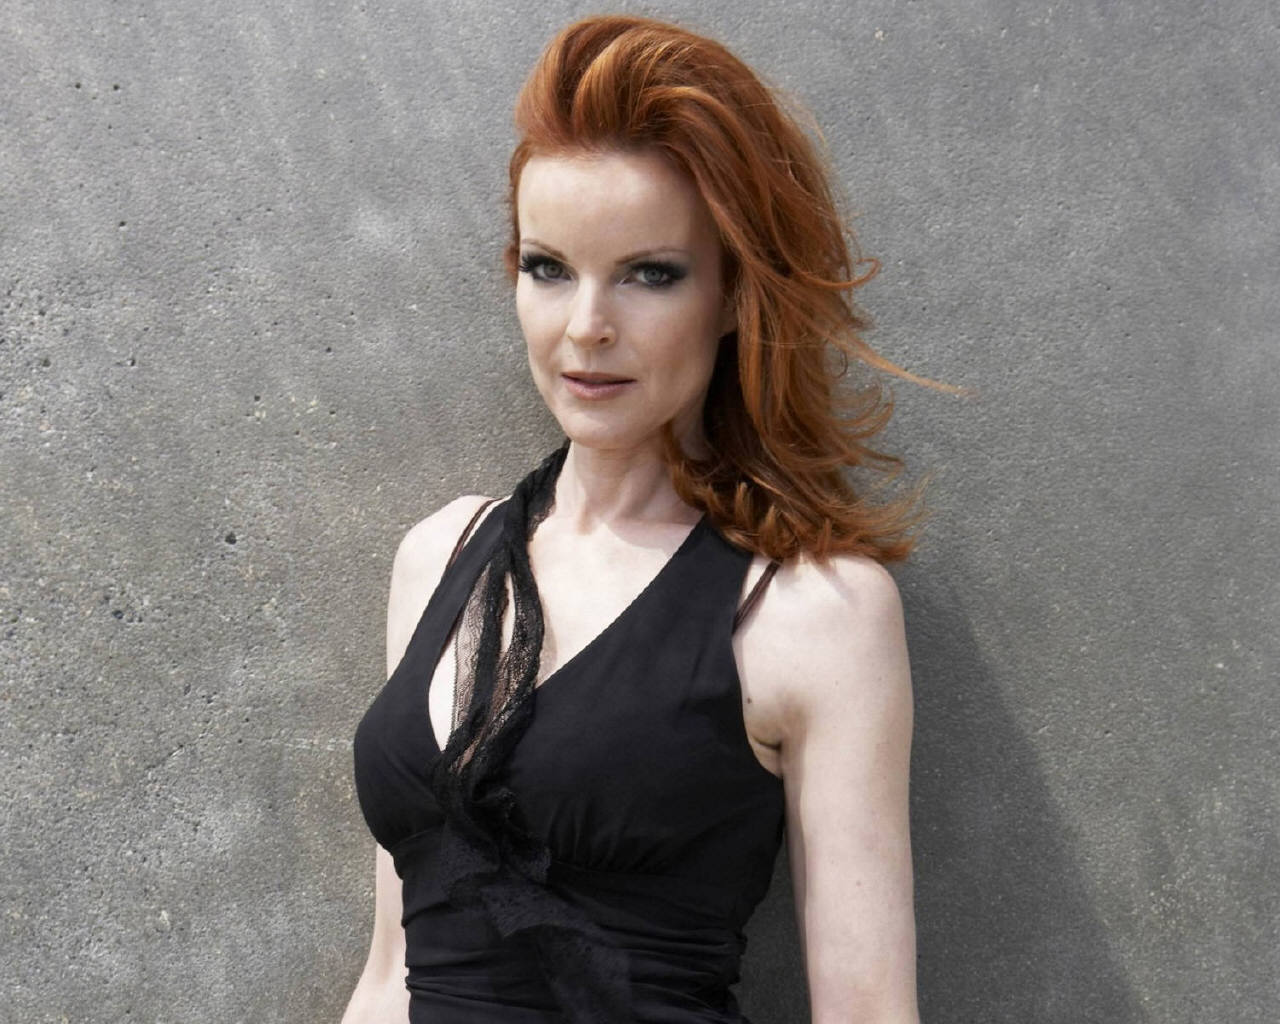 Marcia Cross nudes (98 photo), photos Erotica, Twitter, braless 2020